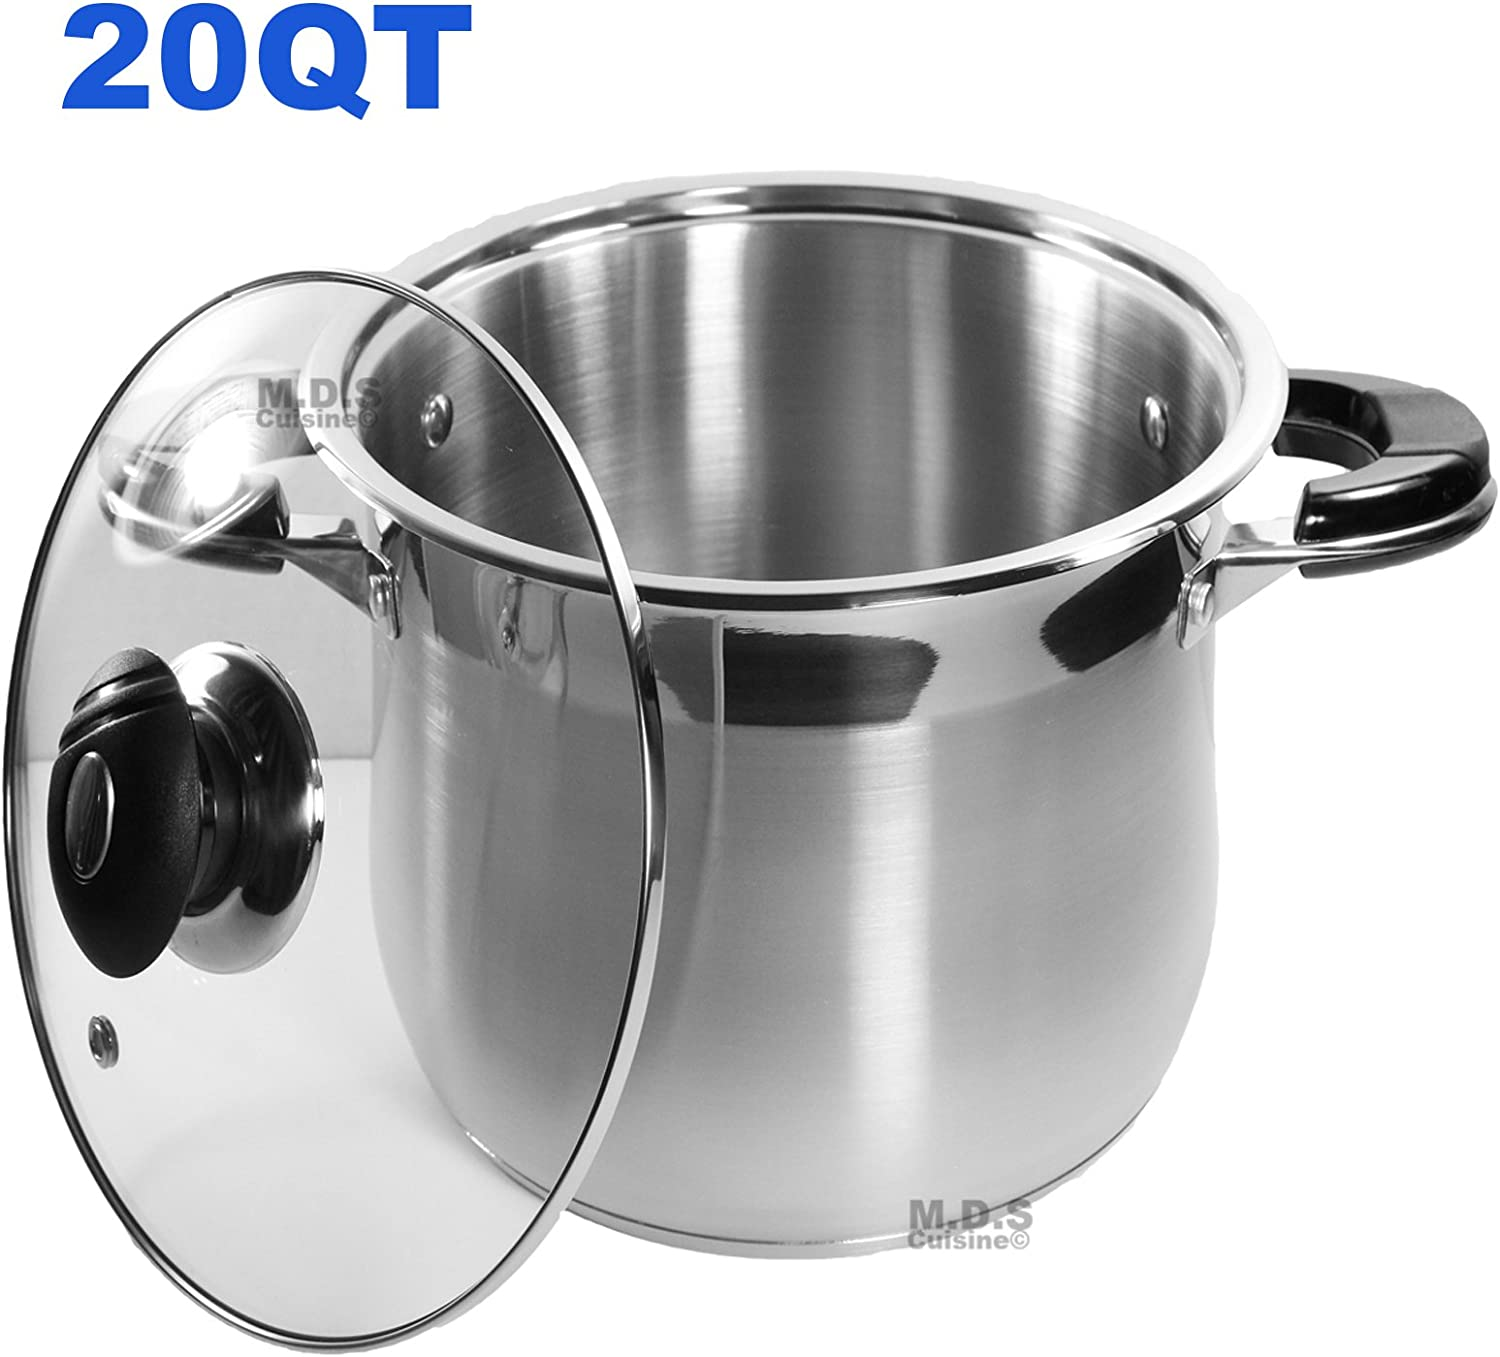 20Qt Stock Pot Stainless Steel Super Double Capsulated Bottom w/Glass Lid